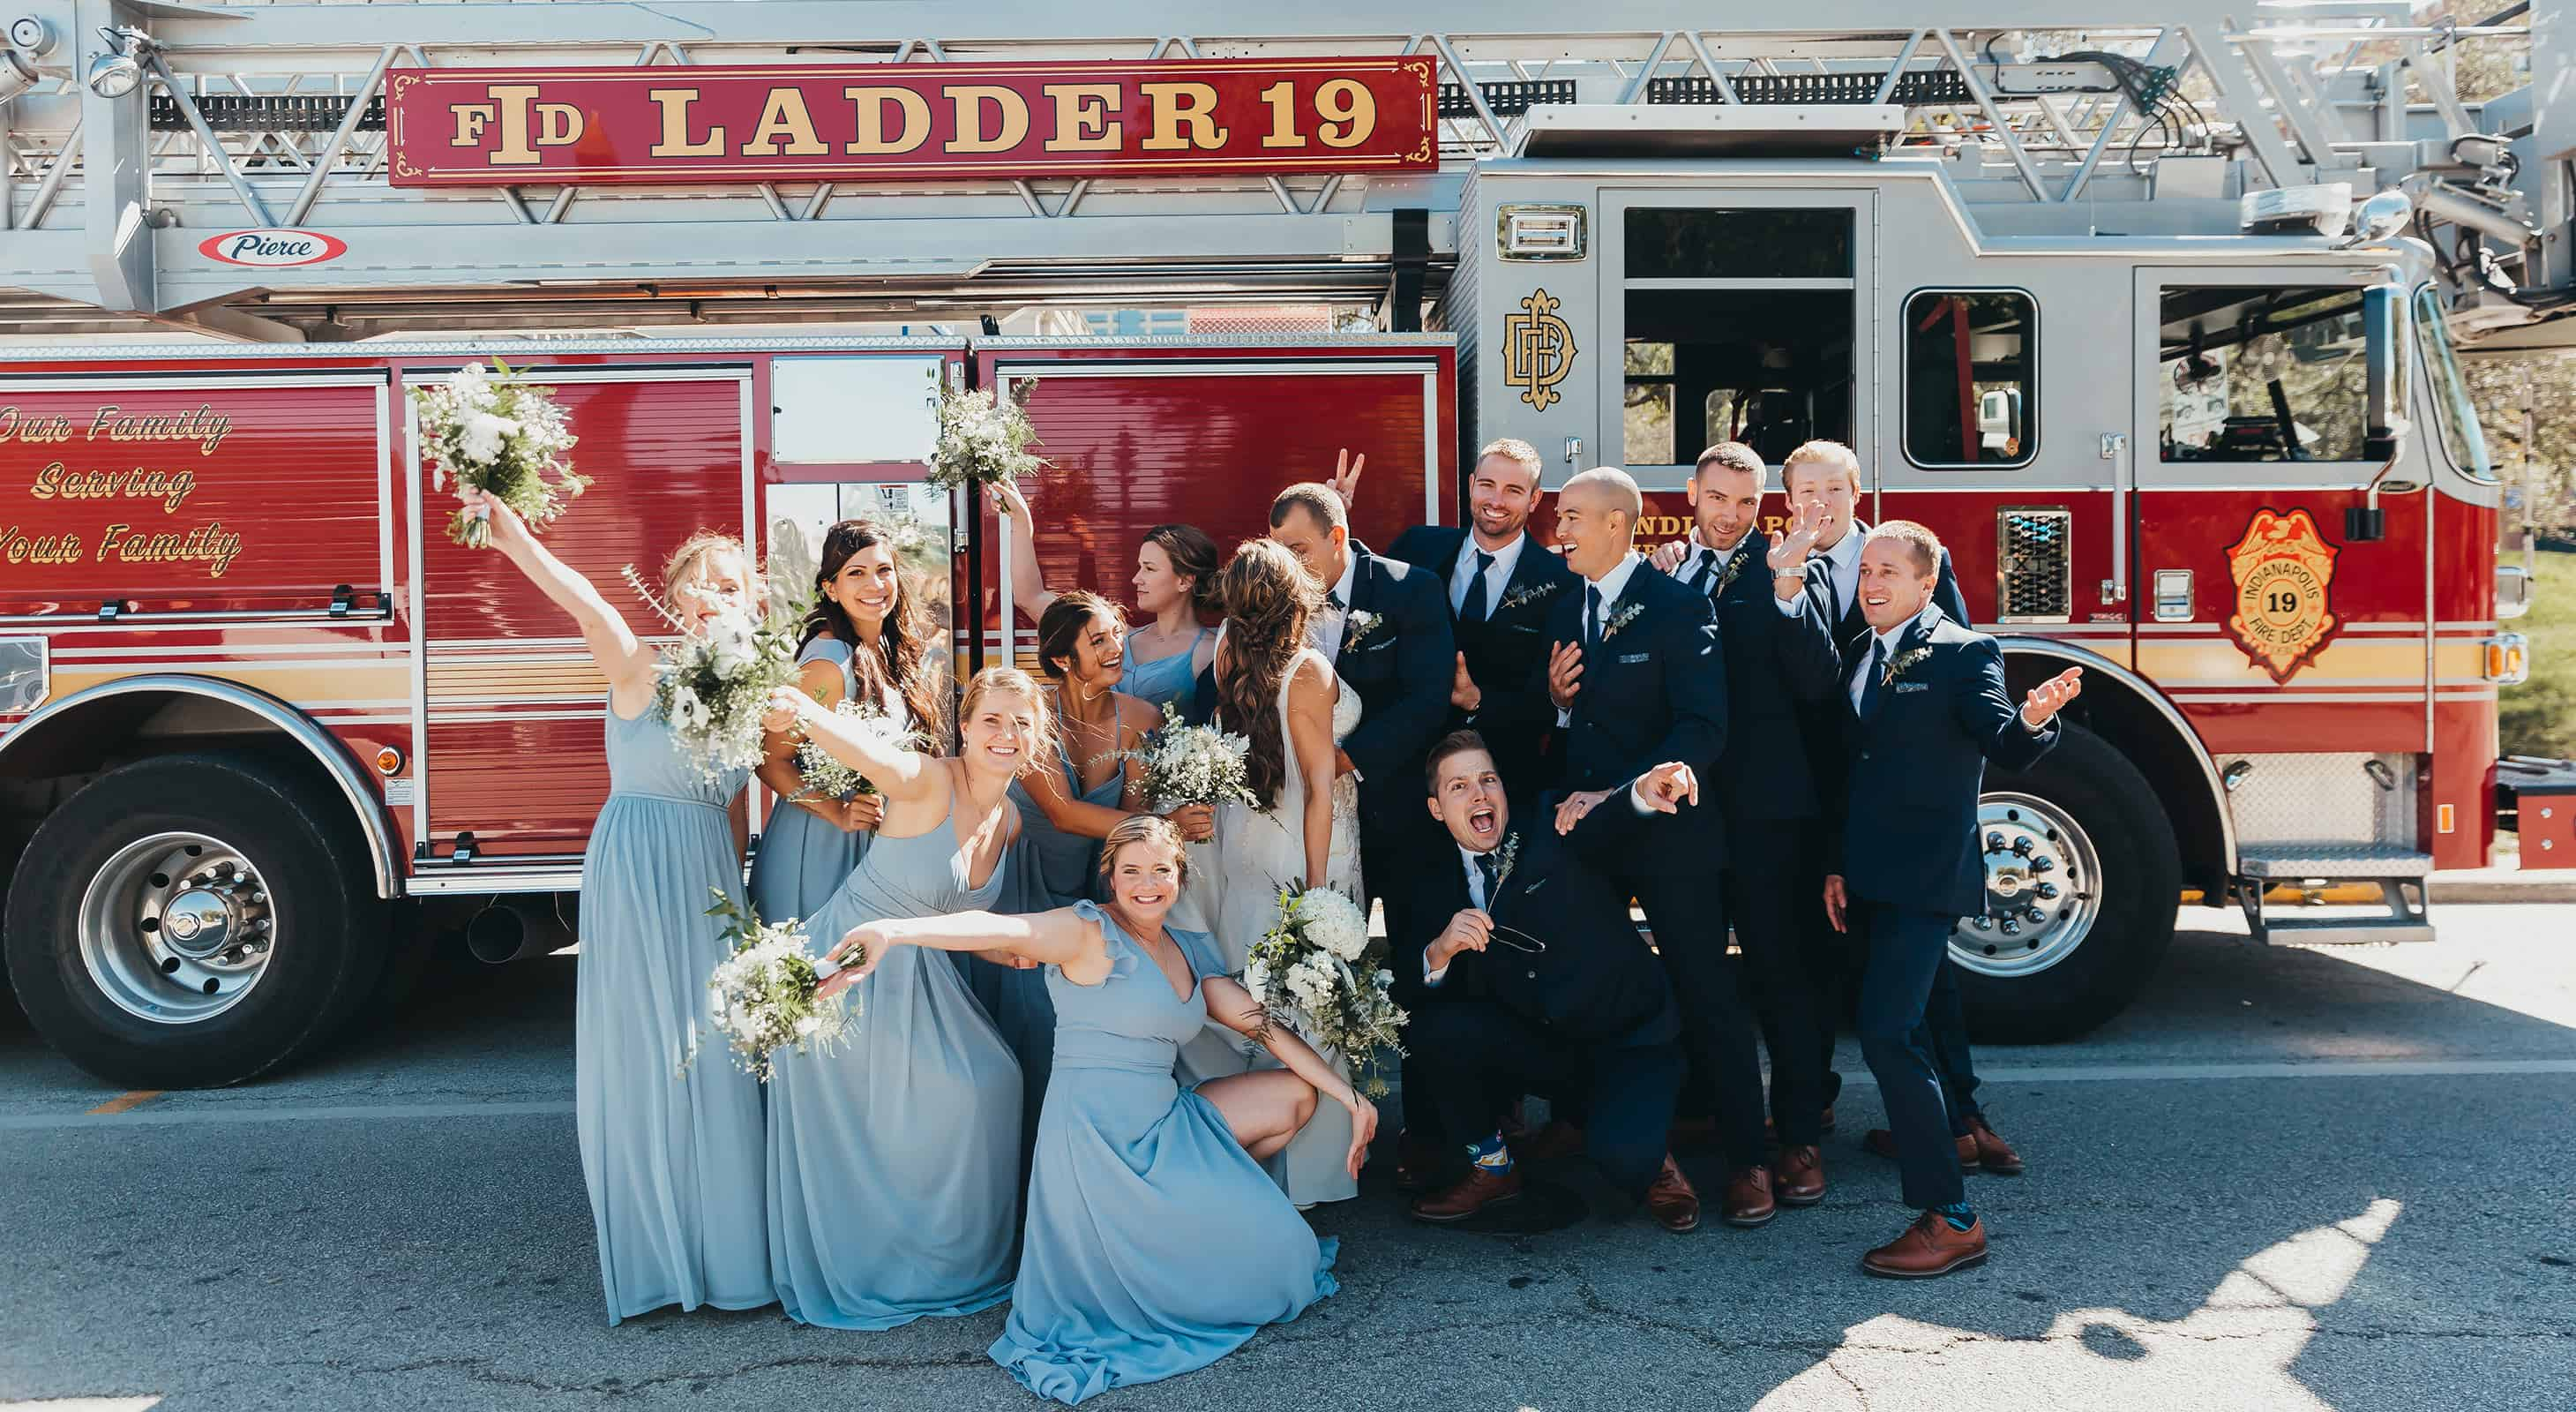 Bridal Party in front of an Indianapolis Ladder 19  Fire Truck